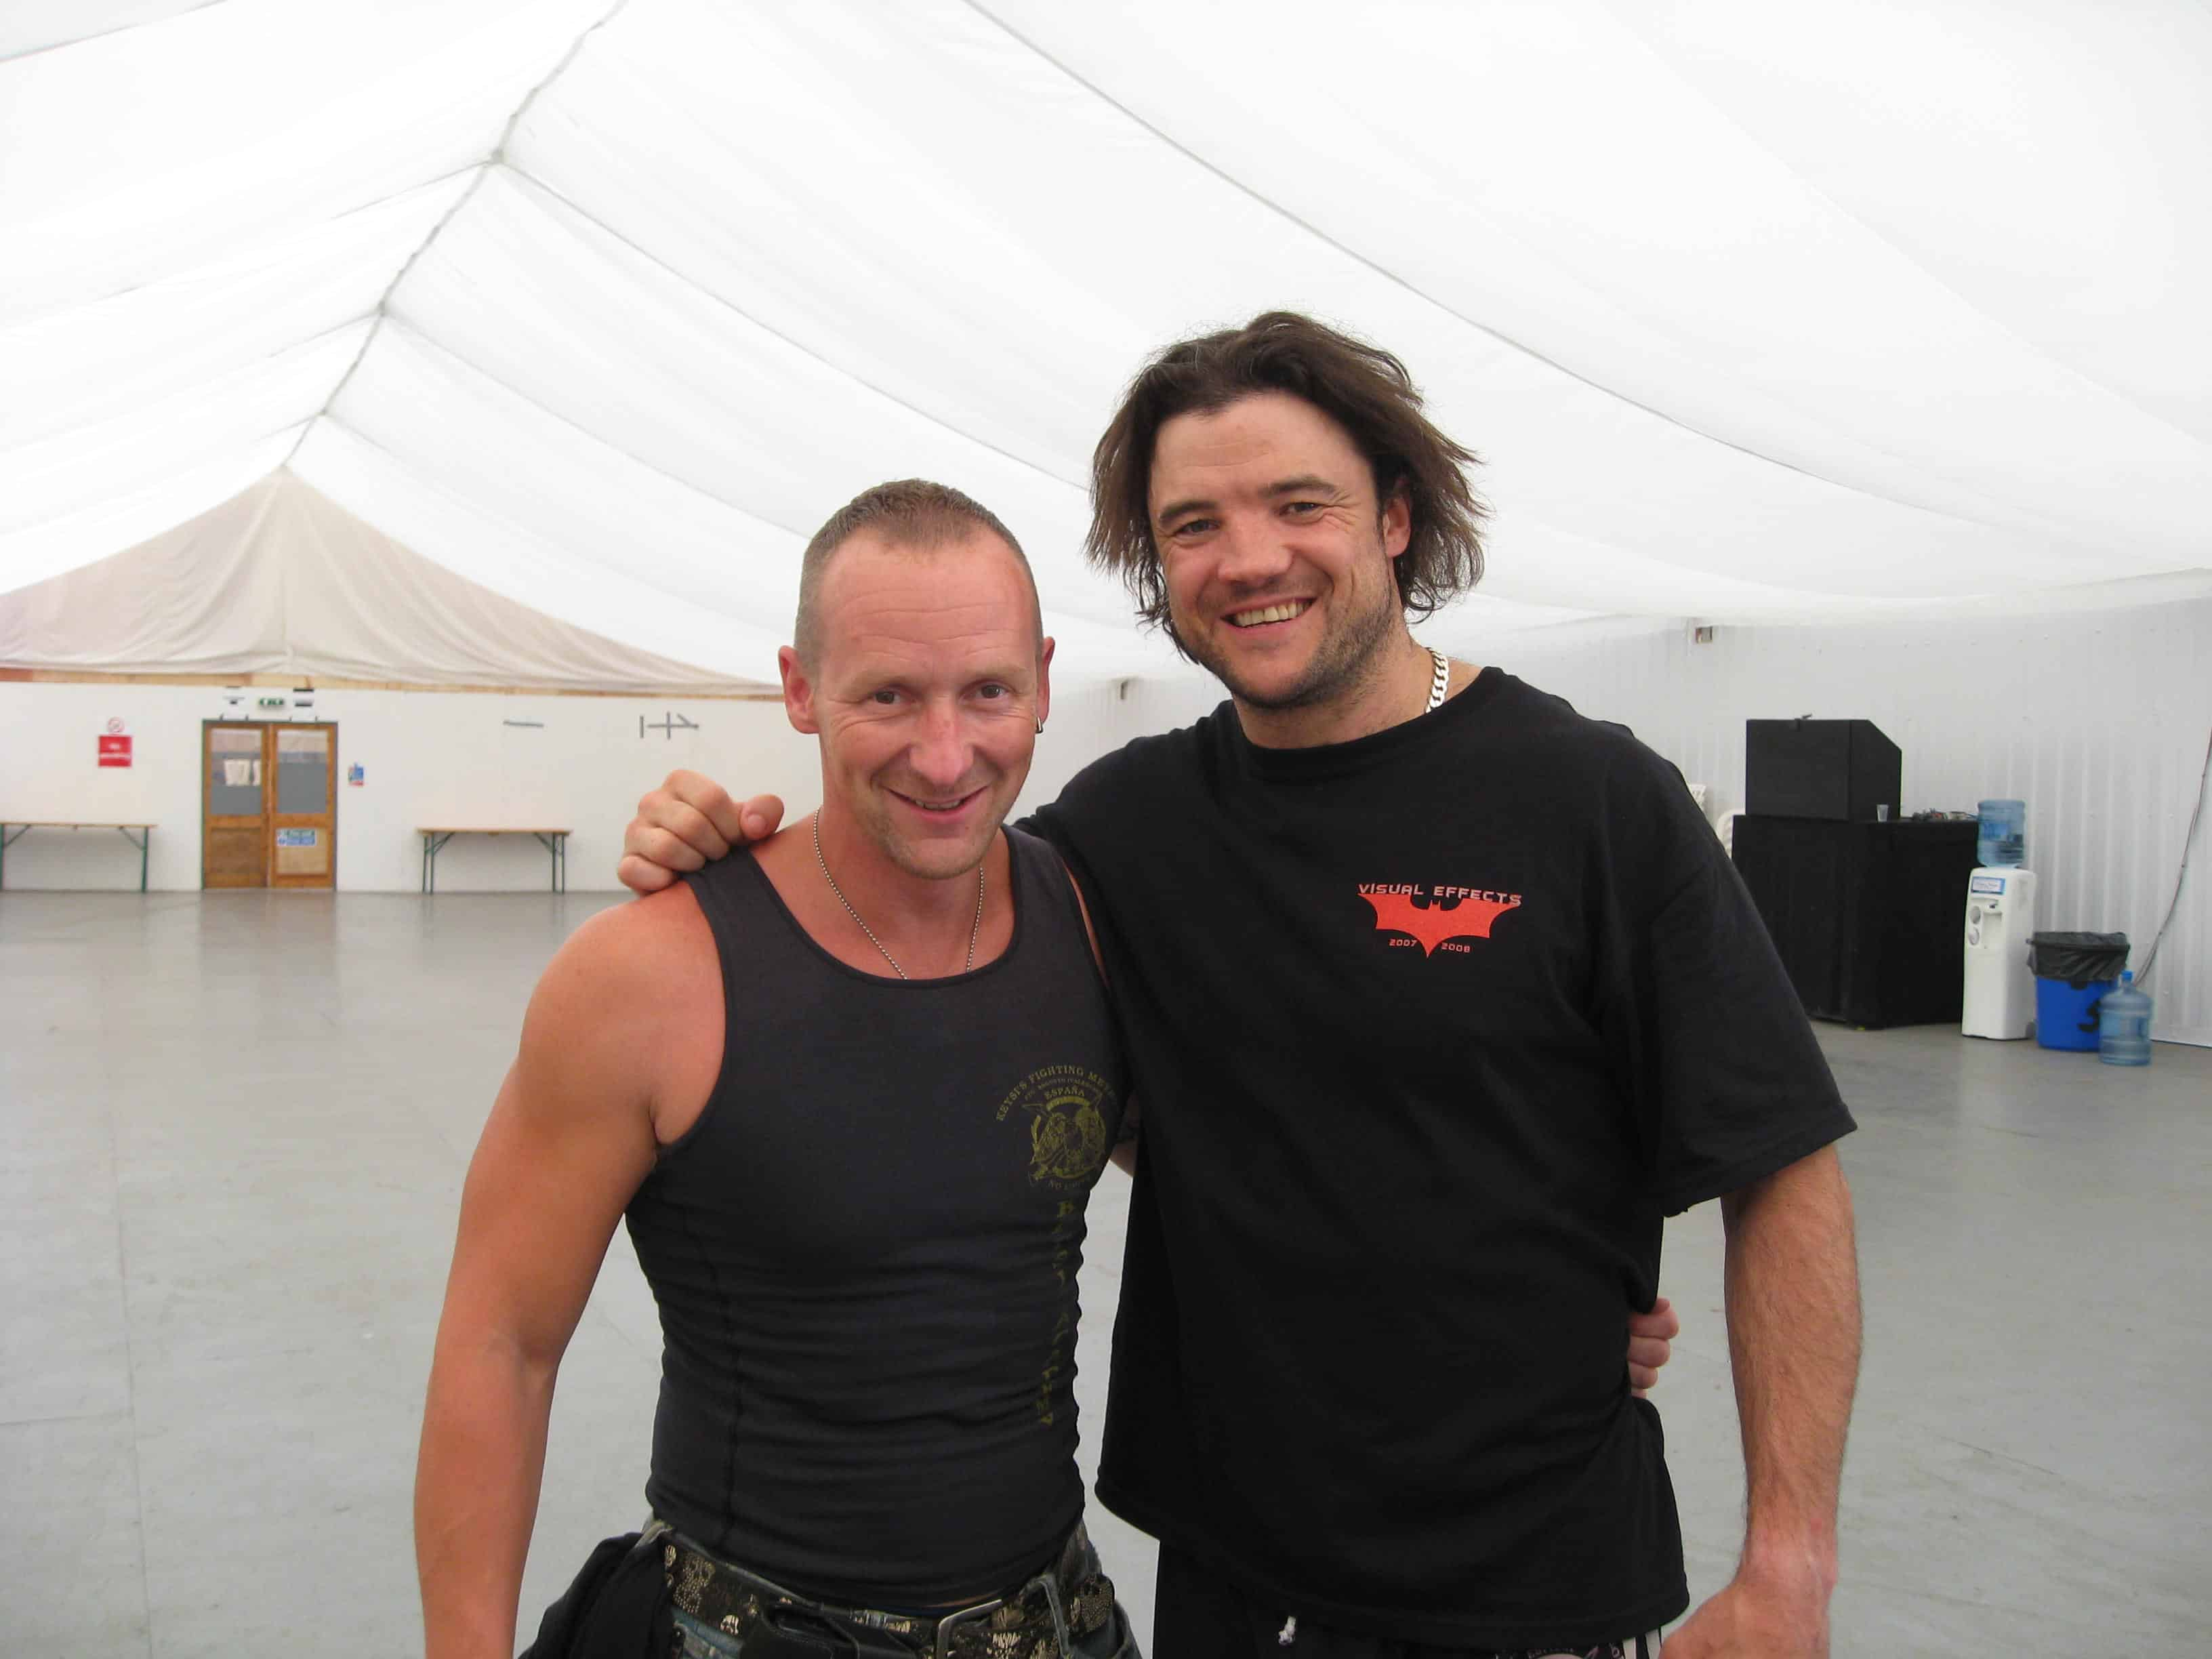 Andy and Buste Reeves - Batman Stunt Double